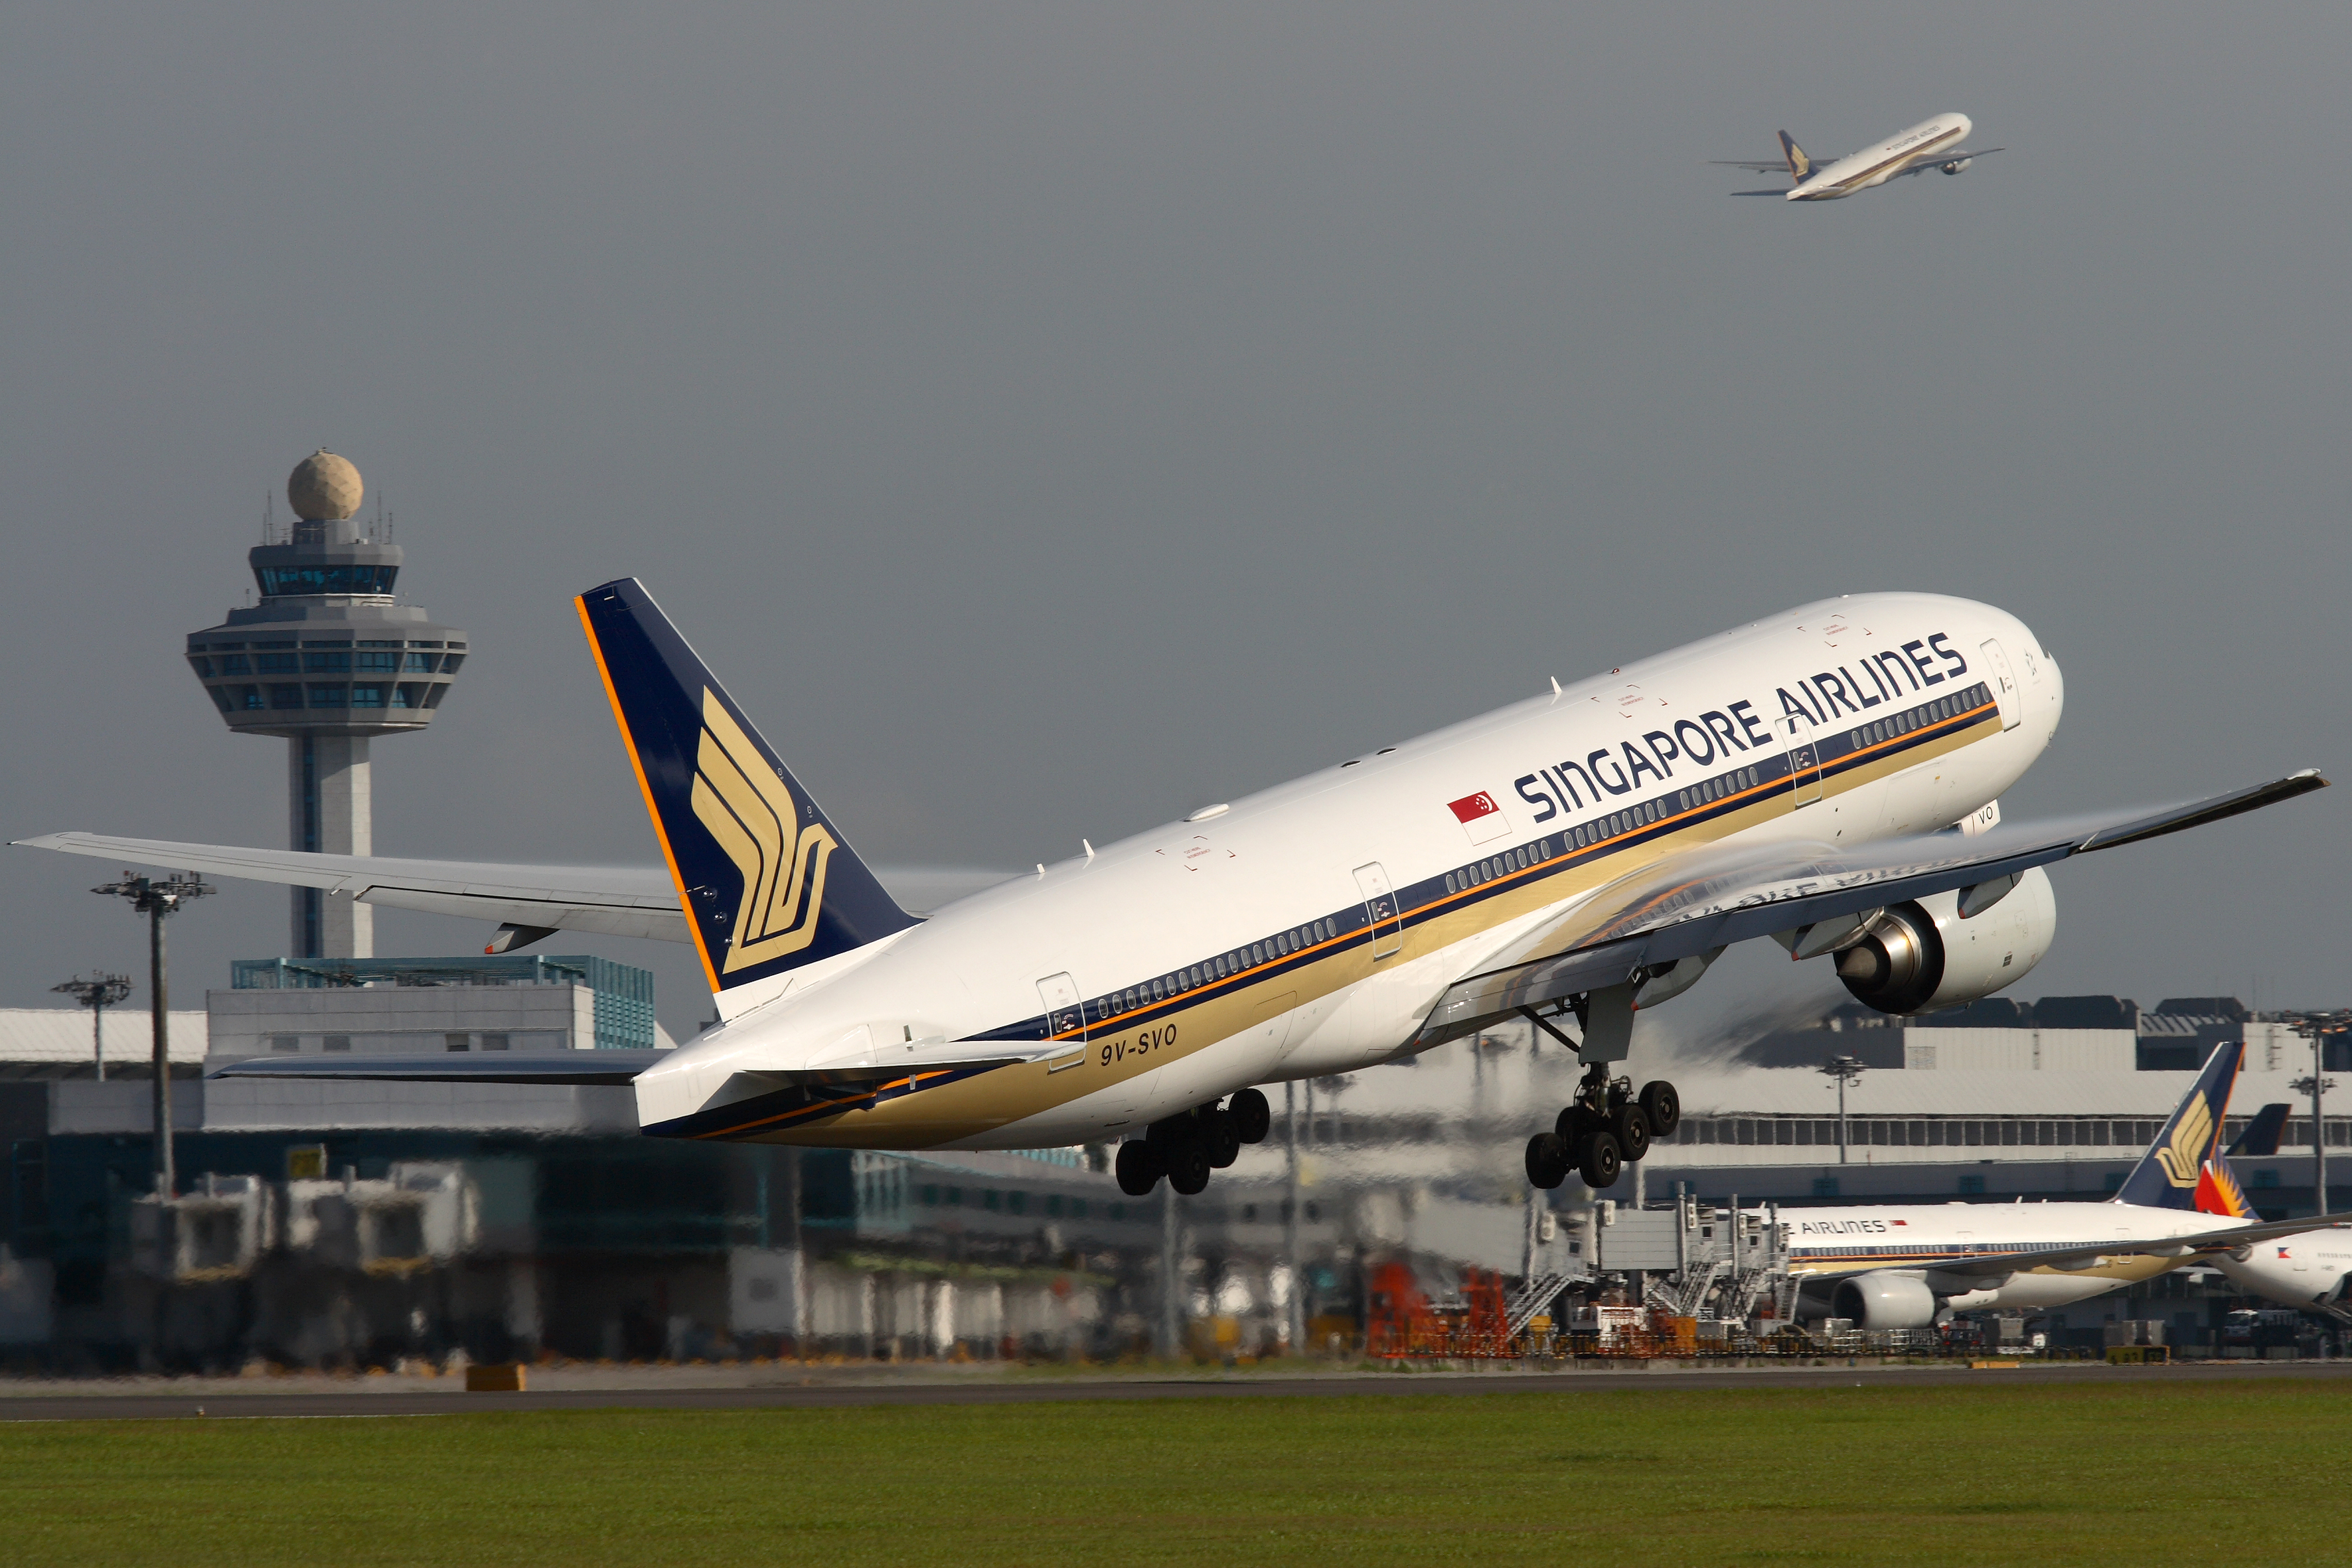 Boeing 777 - Singapore Airlines - Changi Airport